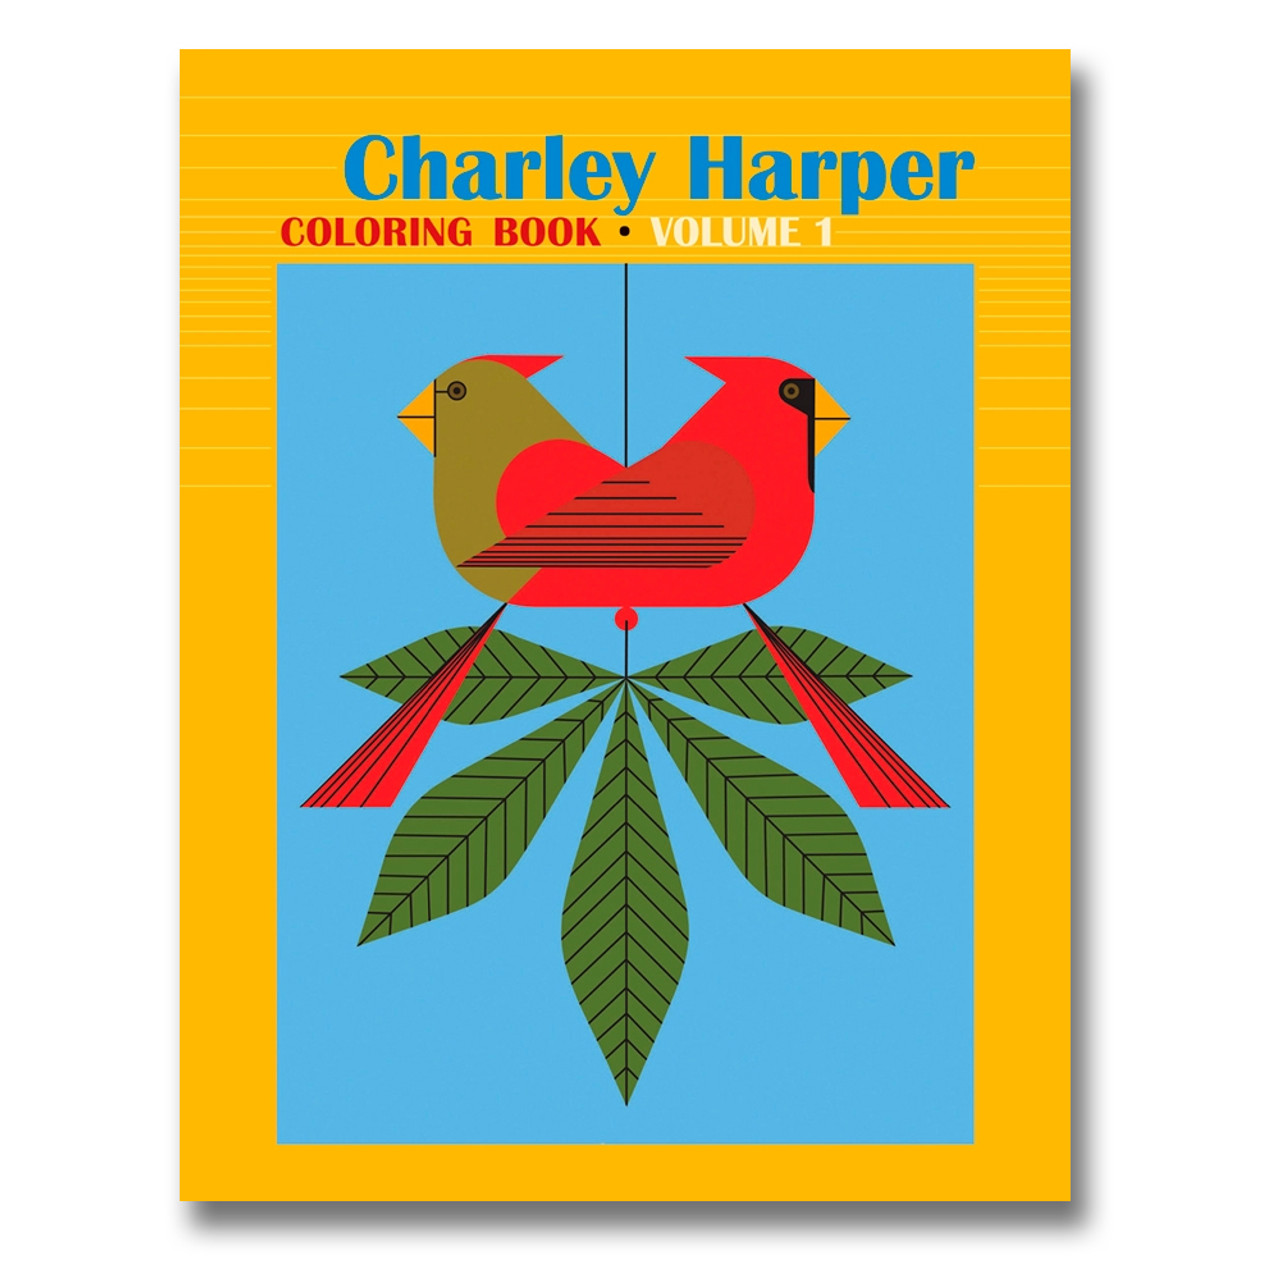 Charley Harper Coloring Book - Volume I